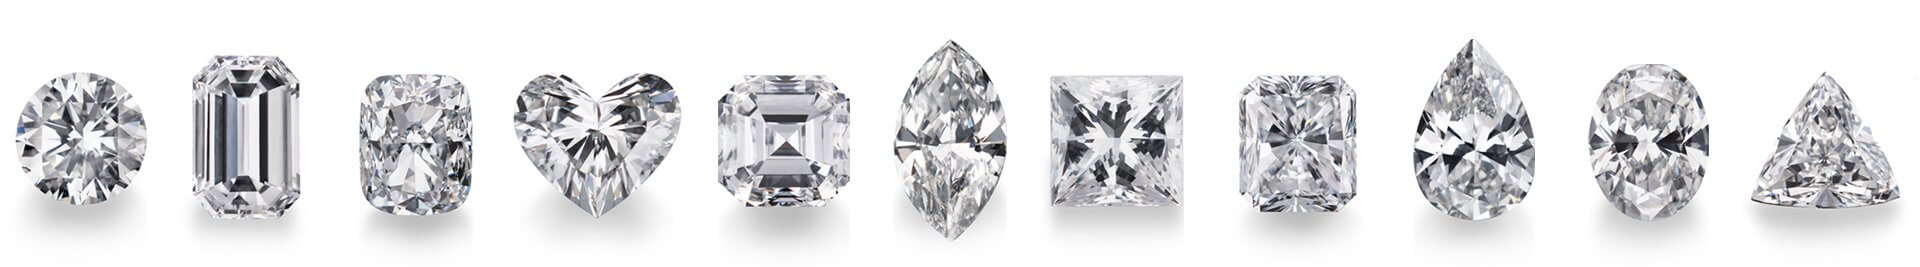 Large Selection of Diamond Jewellery Image